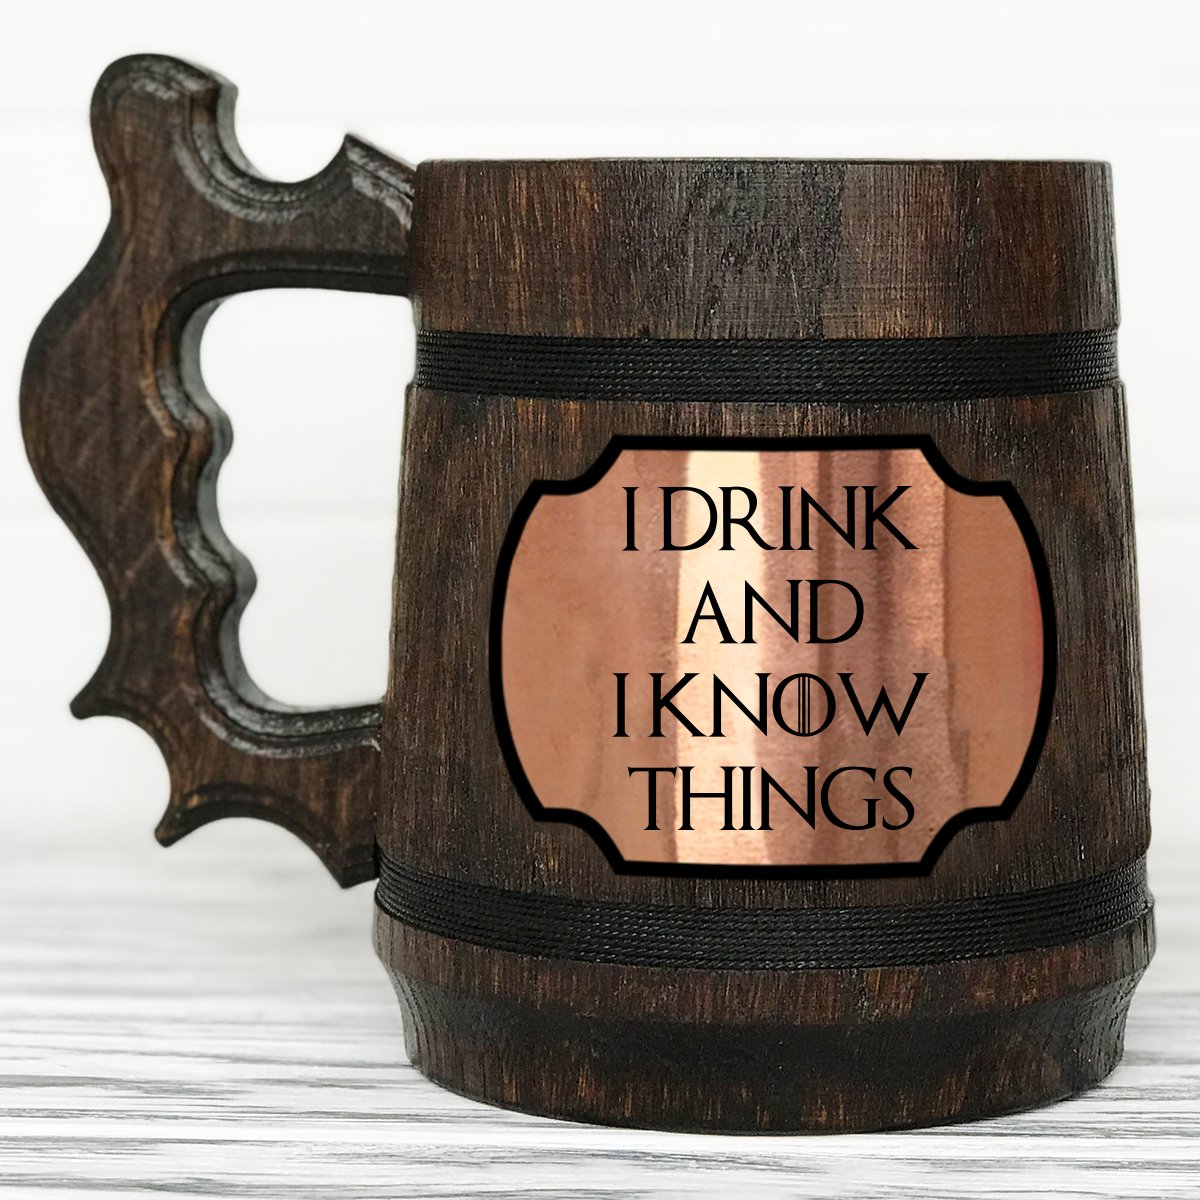 I Drink And I Know Things Mug. Tyrion Lannister Inspired Beer Stein. Game Of Thrones Mug. Personalized GoT Gift. Custom Game of Thrones Gift. Beer Tankard. Wooden Beer Mug #87/0.6L / 22 ounces